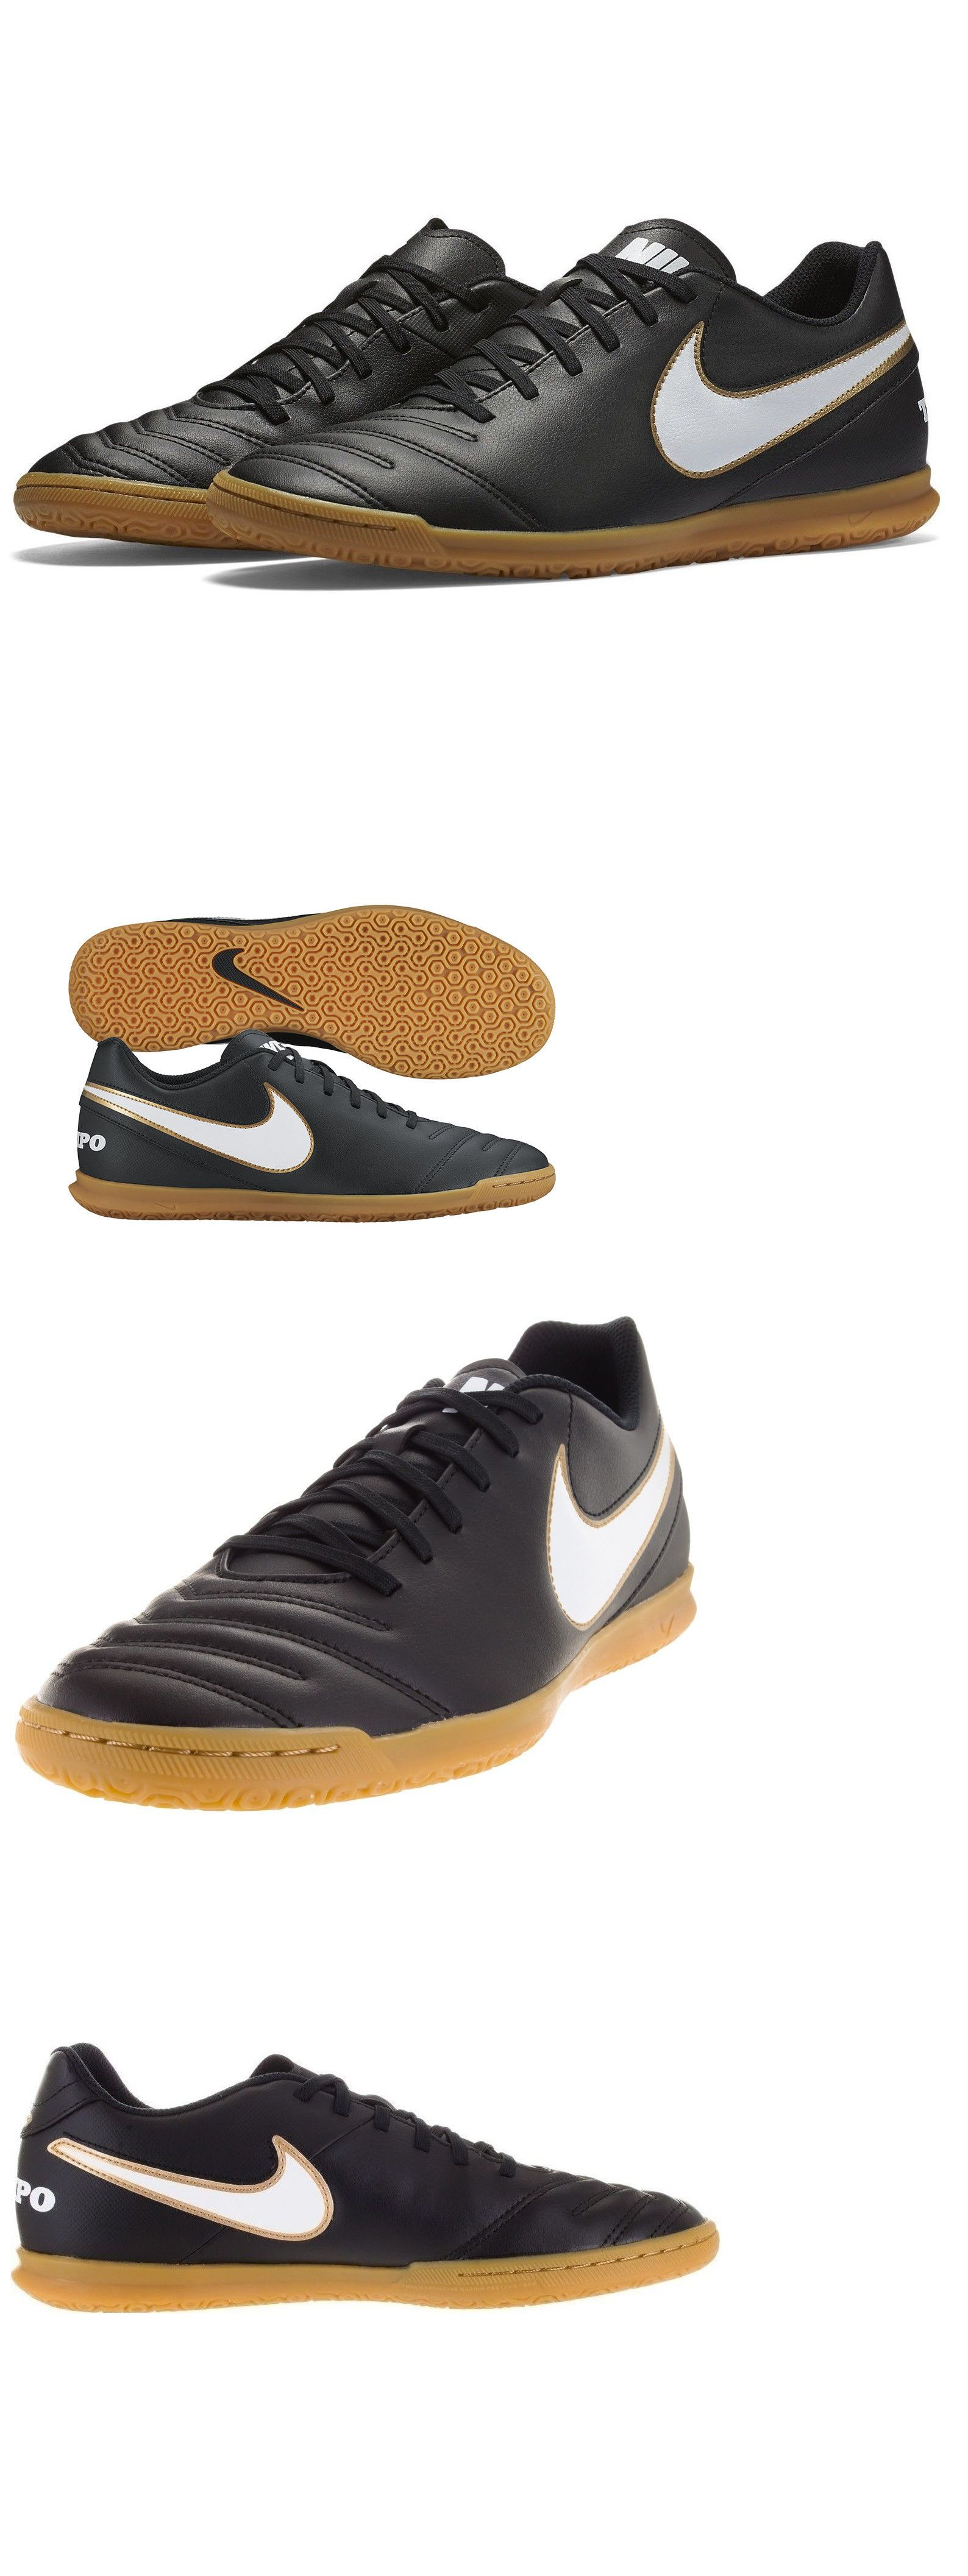 9fc2f823643 Clothing Shoes and Accessories 159178  Nike Tiempo Rio Iii Ic 819234 010  Black White Men S Indoor Soccer Shoes -  BUY IT NOW ONLY   54.95 on  eBay   clothing ...